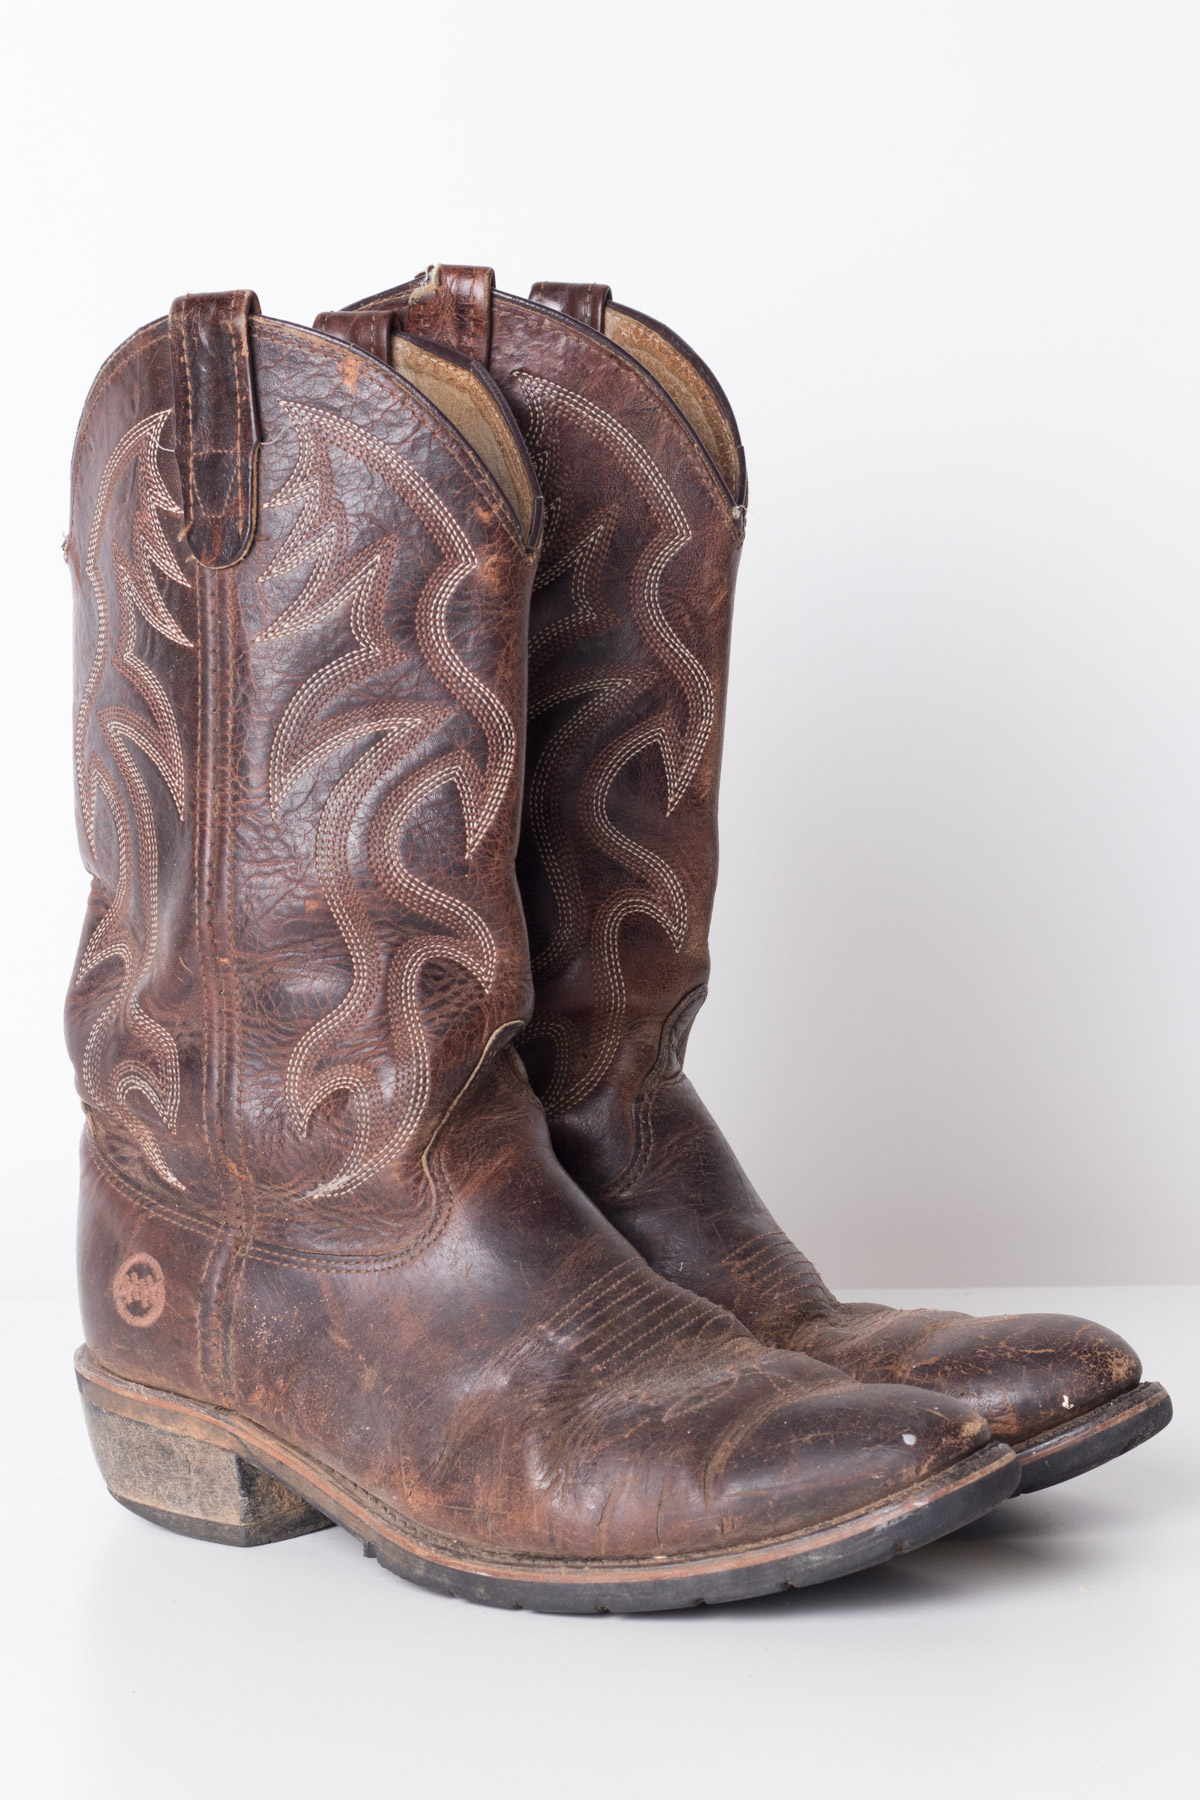 12744831ed0 Double H Vintage Cowboy Boots (8EEE)